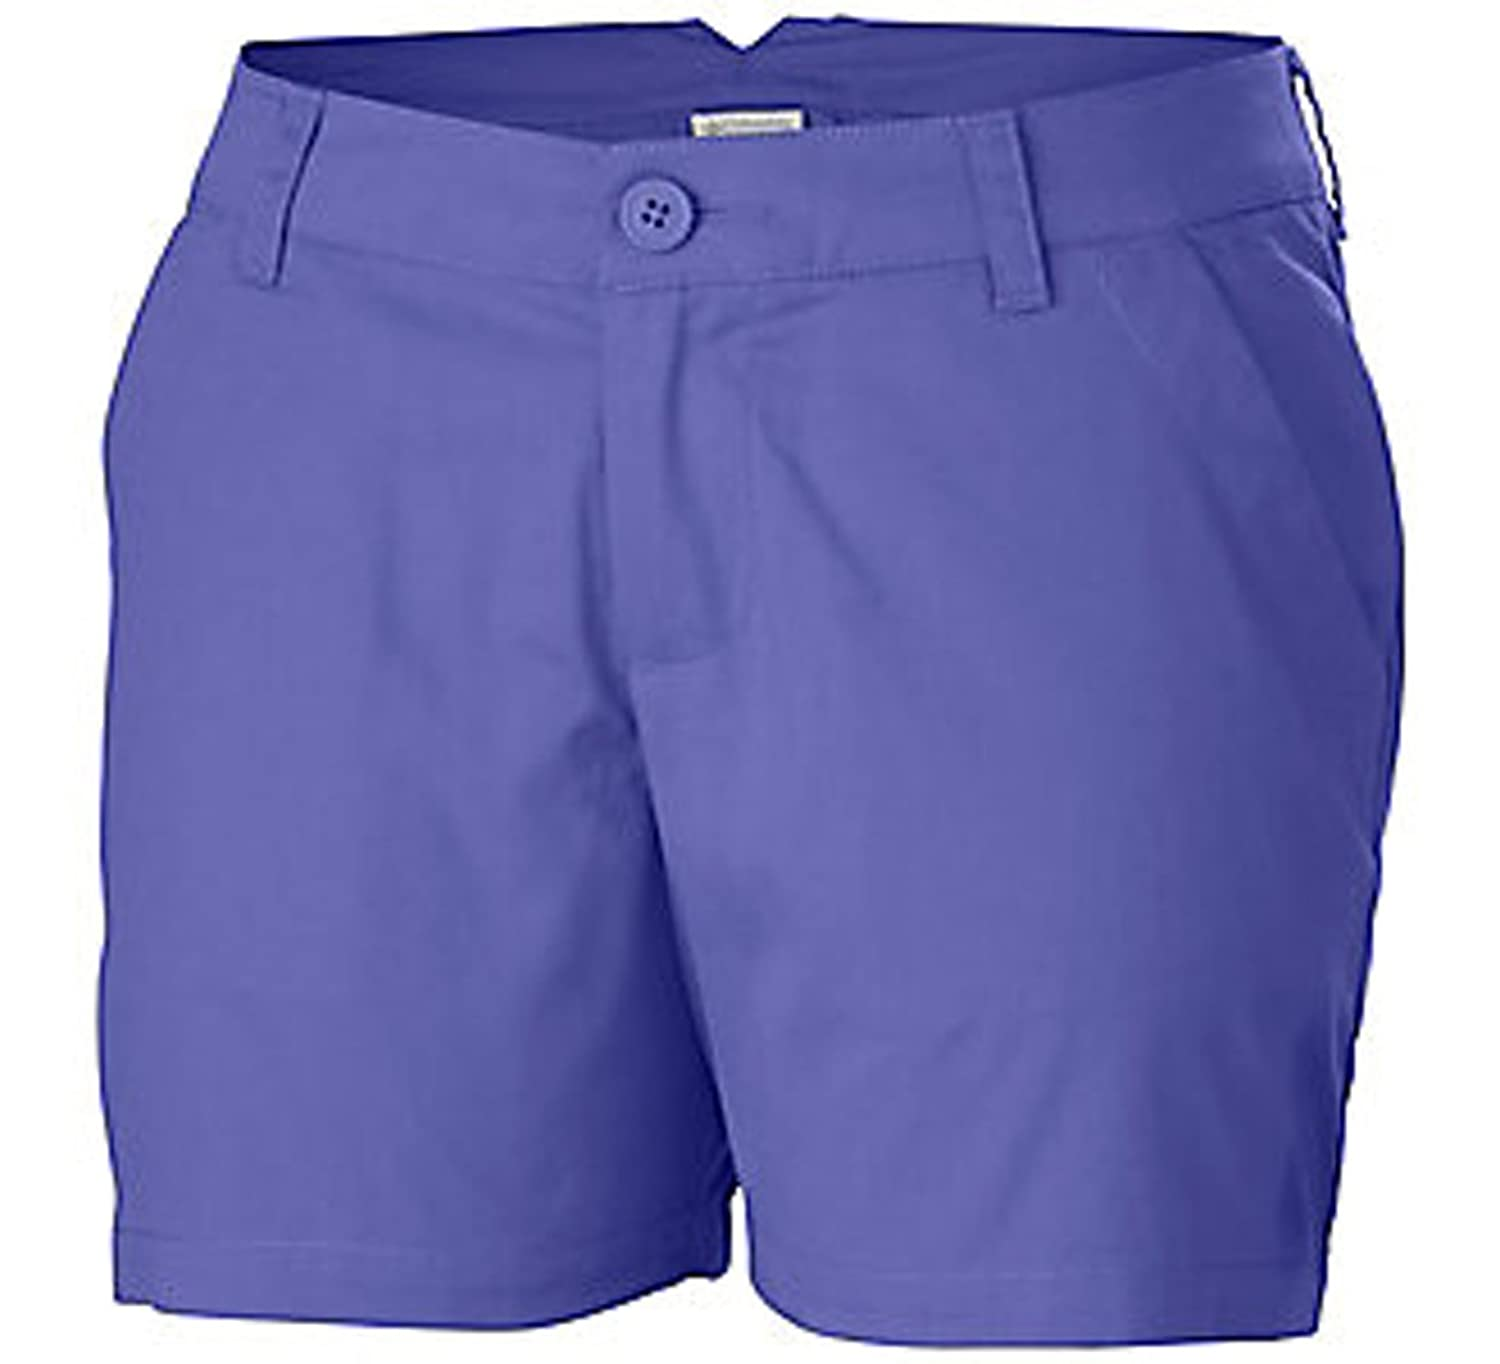 Columbia Women's Kenzie Cove Short Size 4 in Purple Lotus